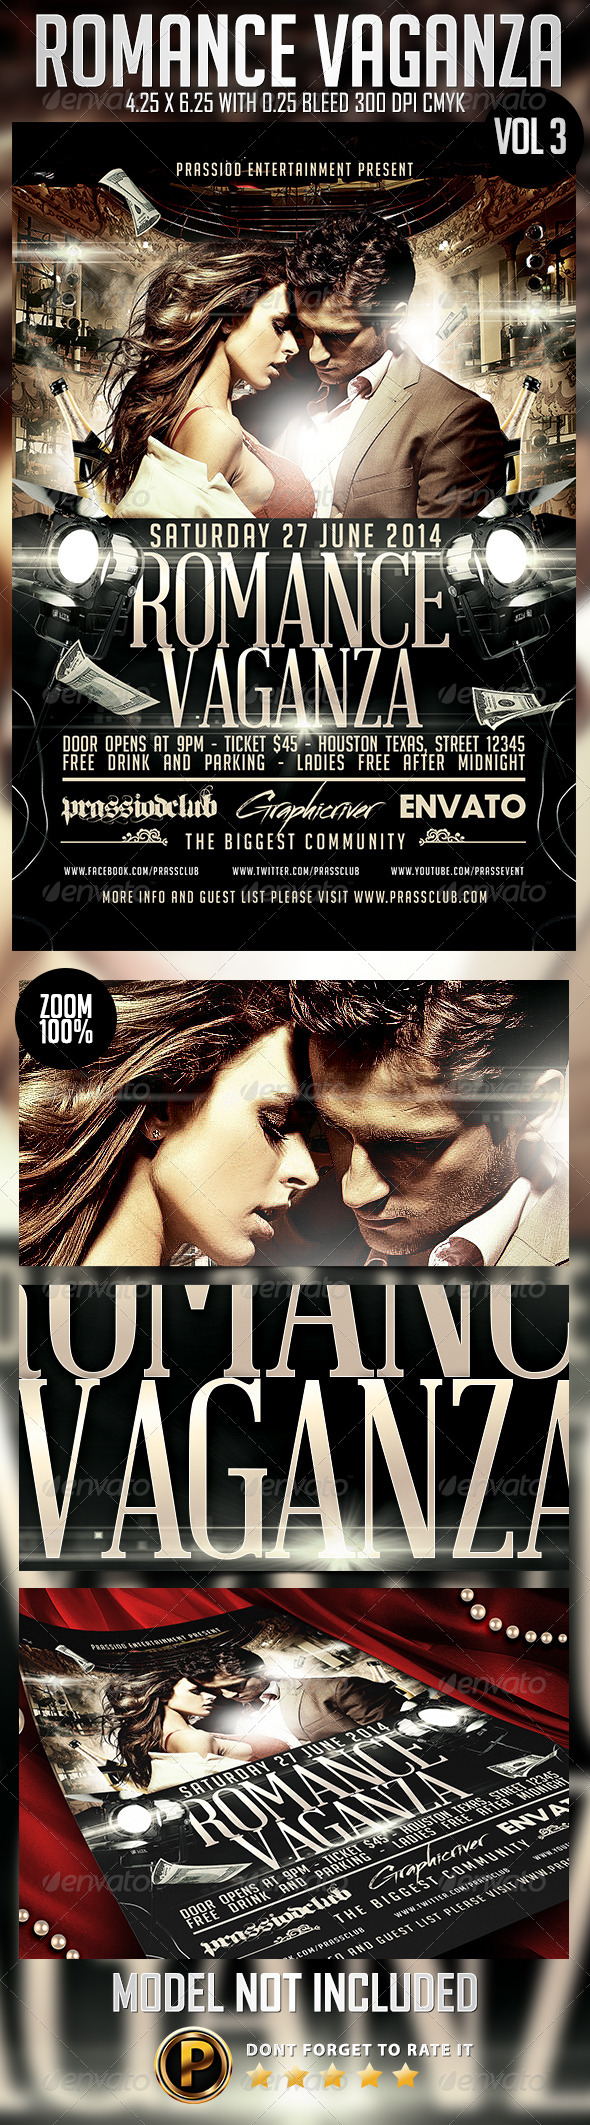 Romance Vaganza Flyer Template Vol 3 - Clubs & Parties Events